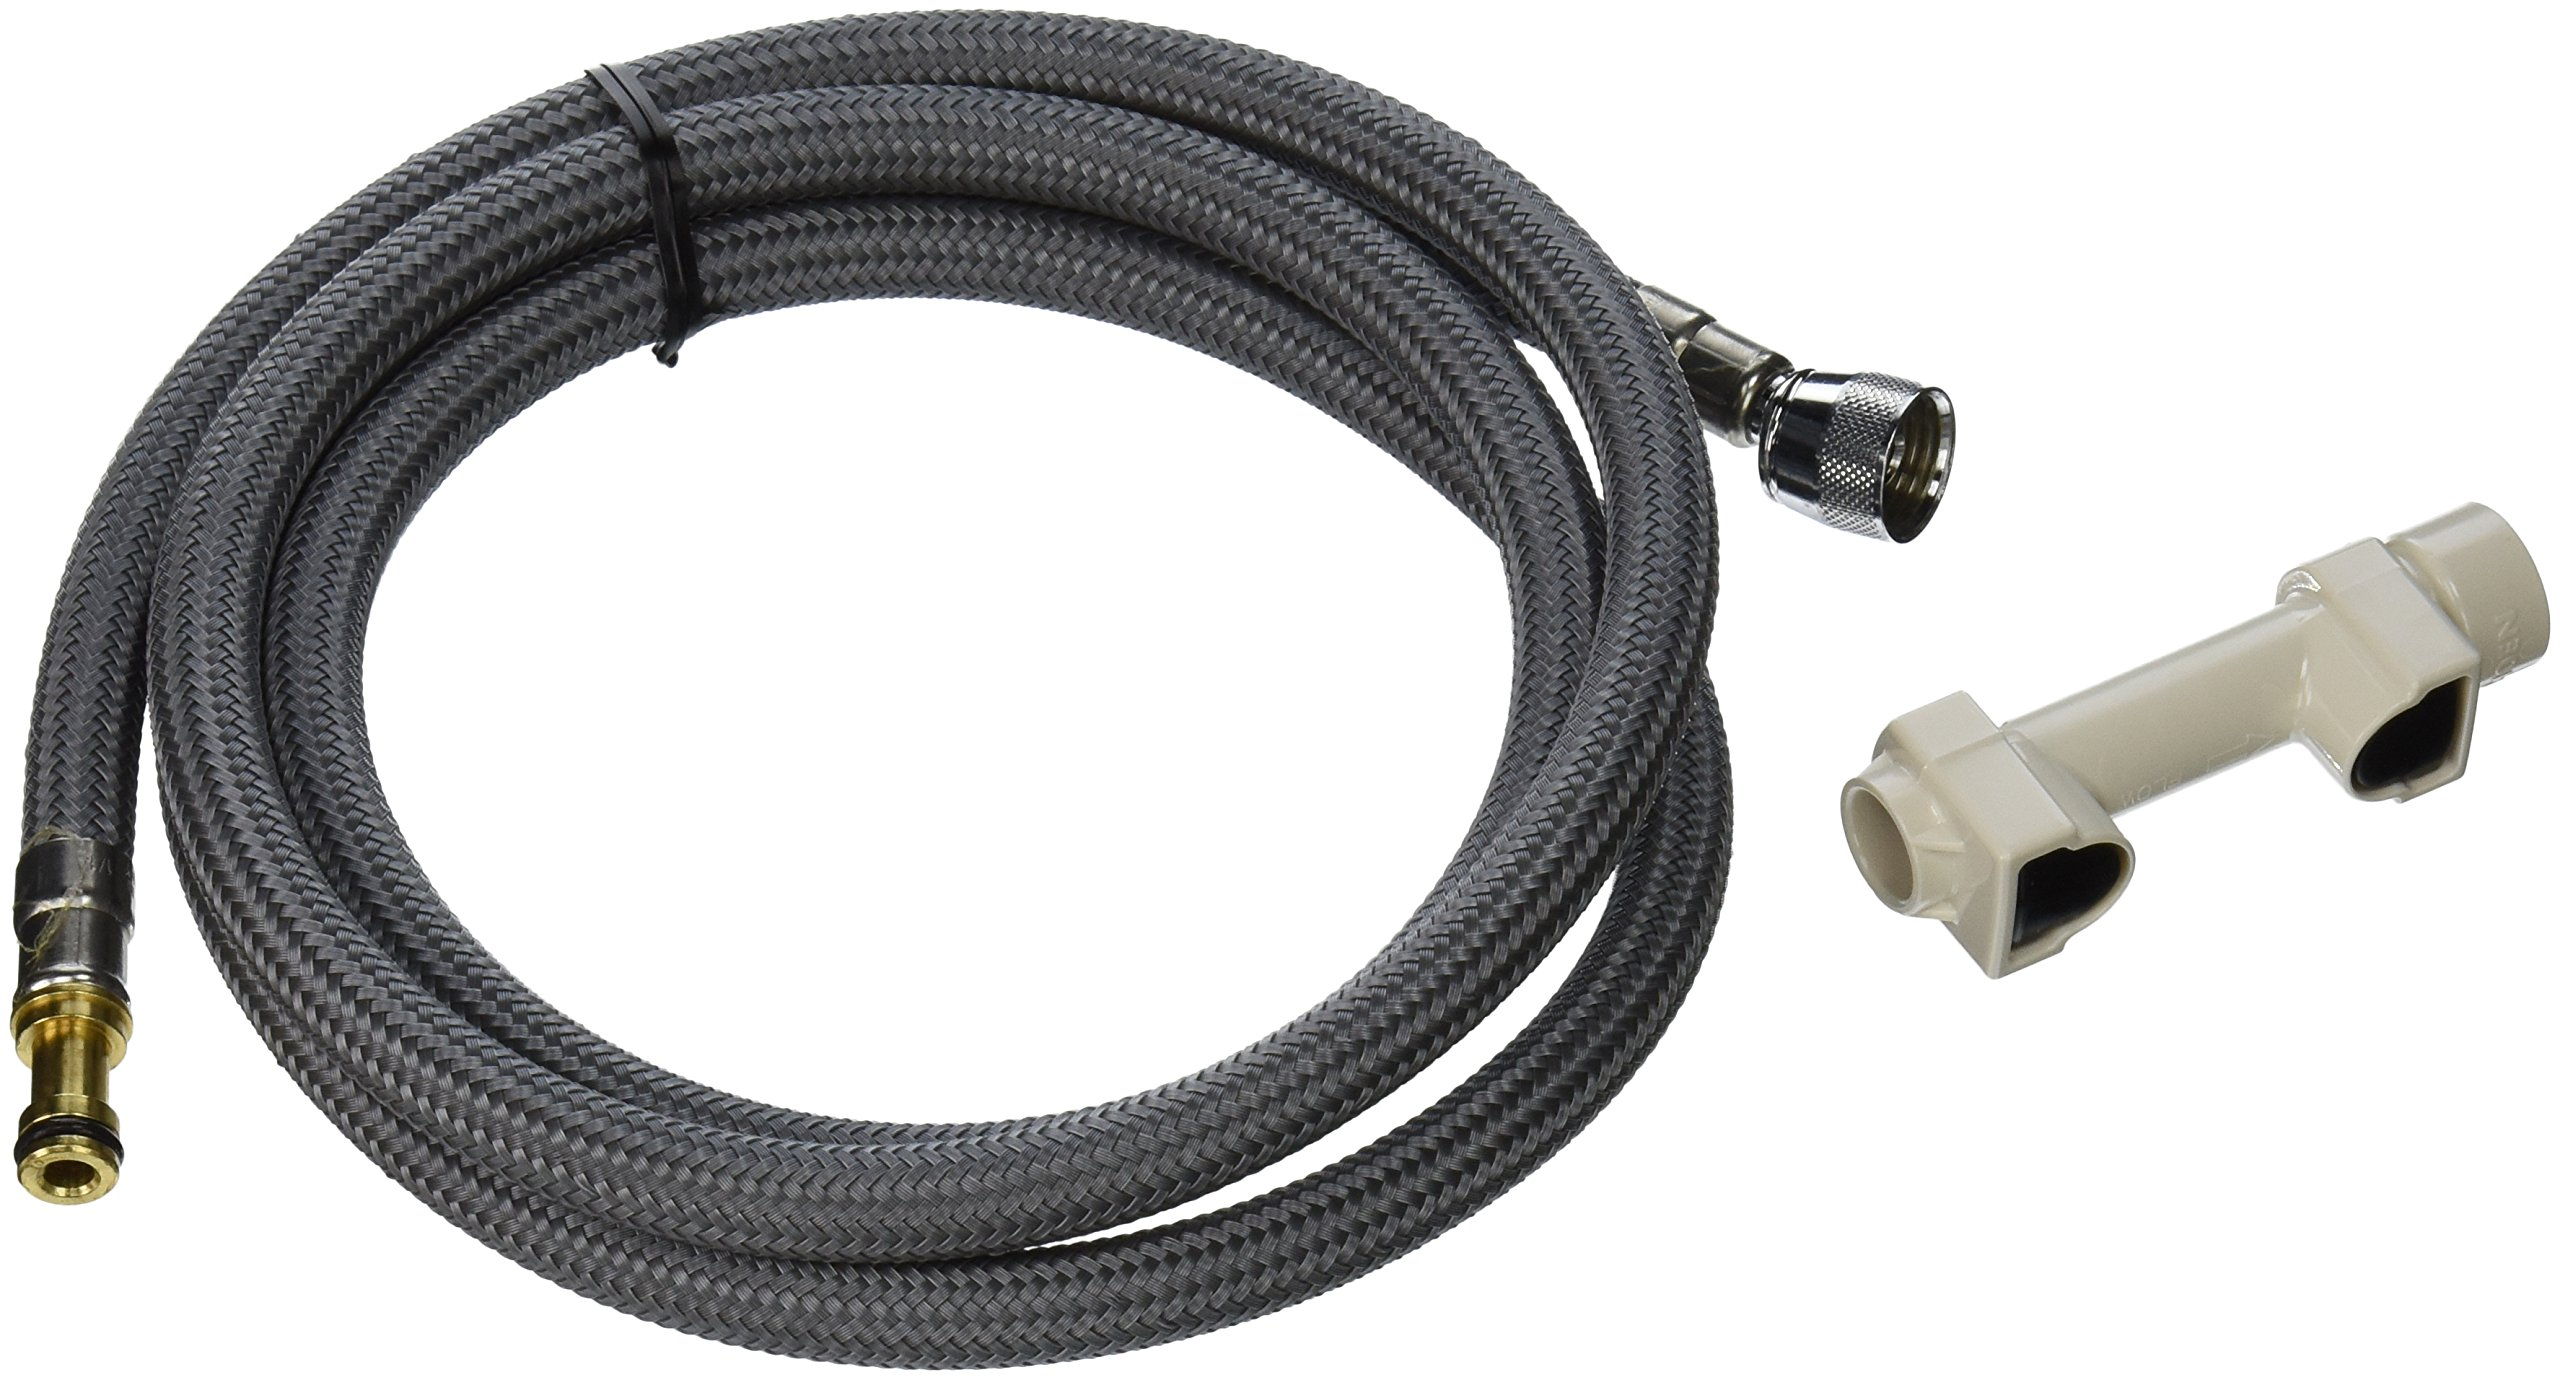 Moen 124662 Hose Replacement Kit